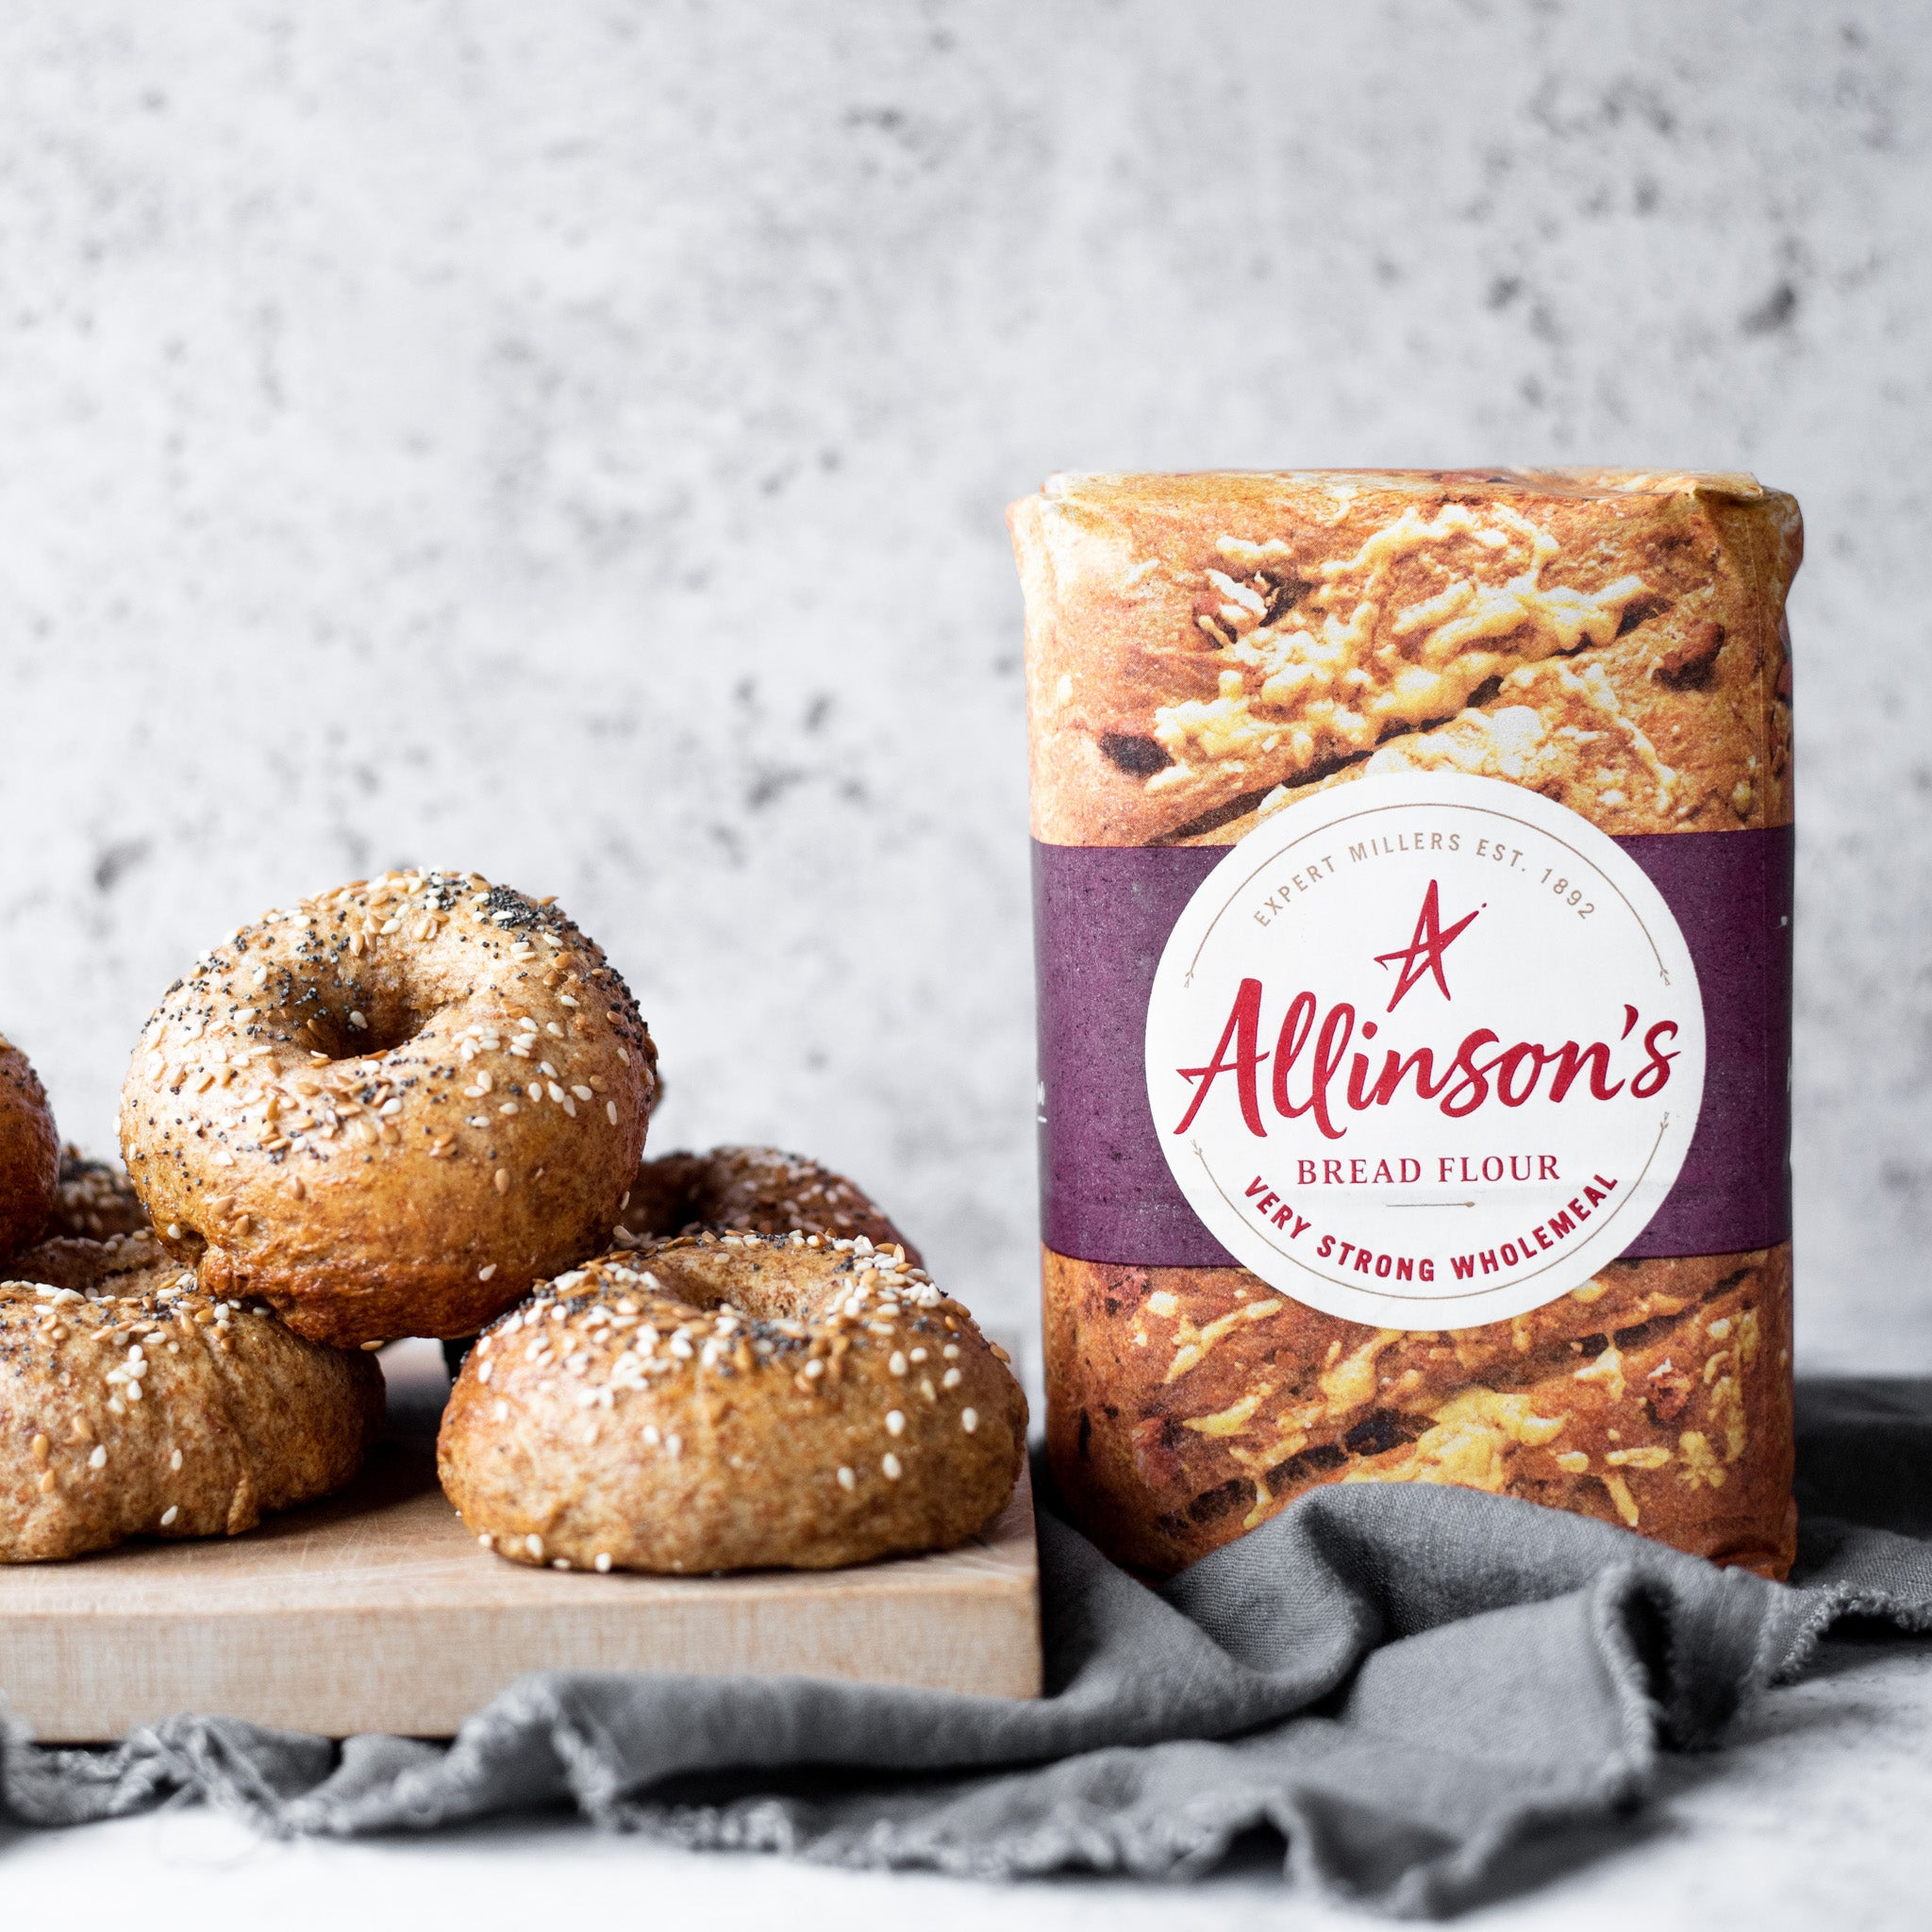 Allinsons-Wholemeal-Bagels-1-1-Baking-Mad-1.jpg